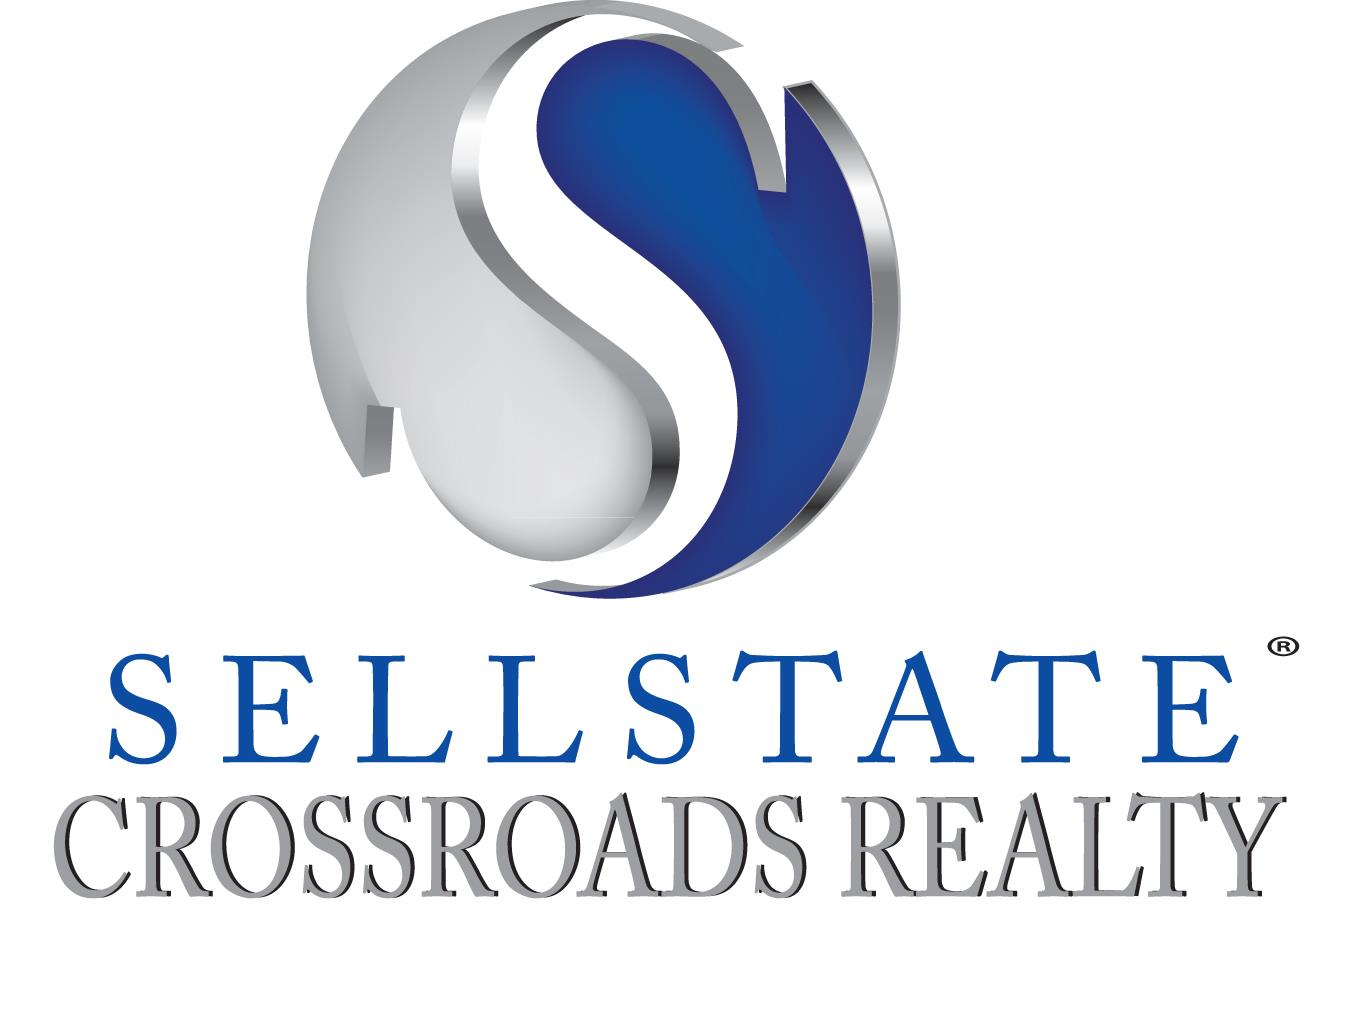 Sellstate Crossroads